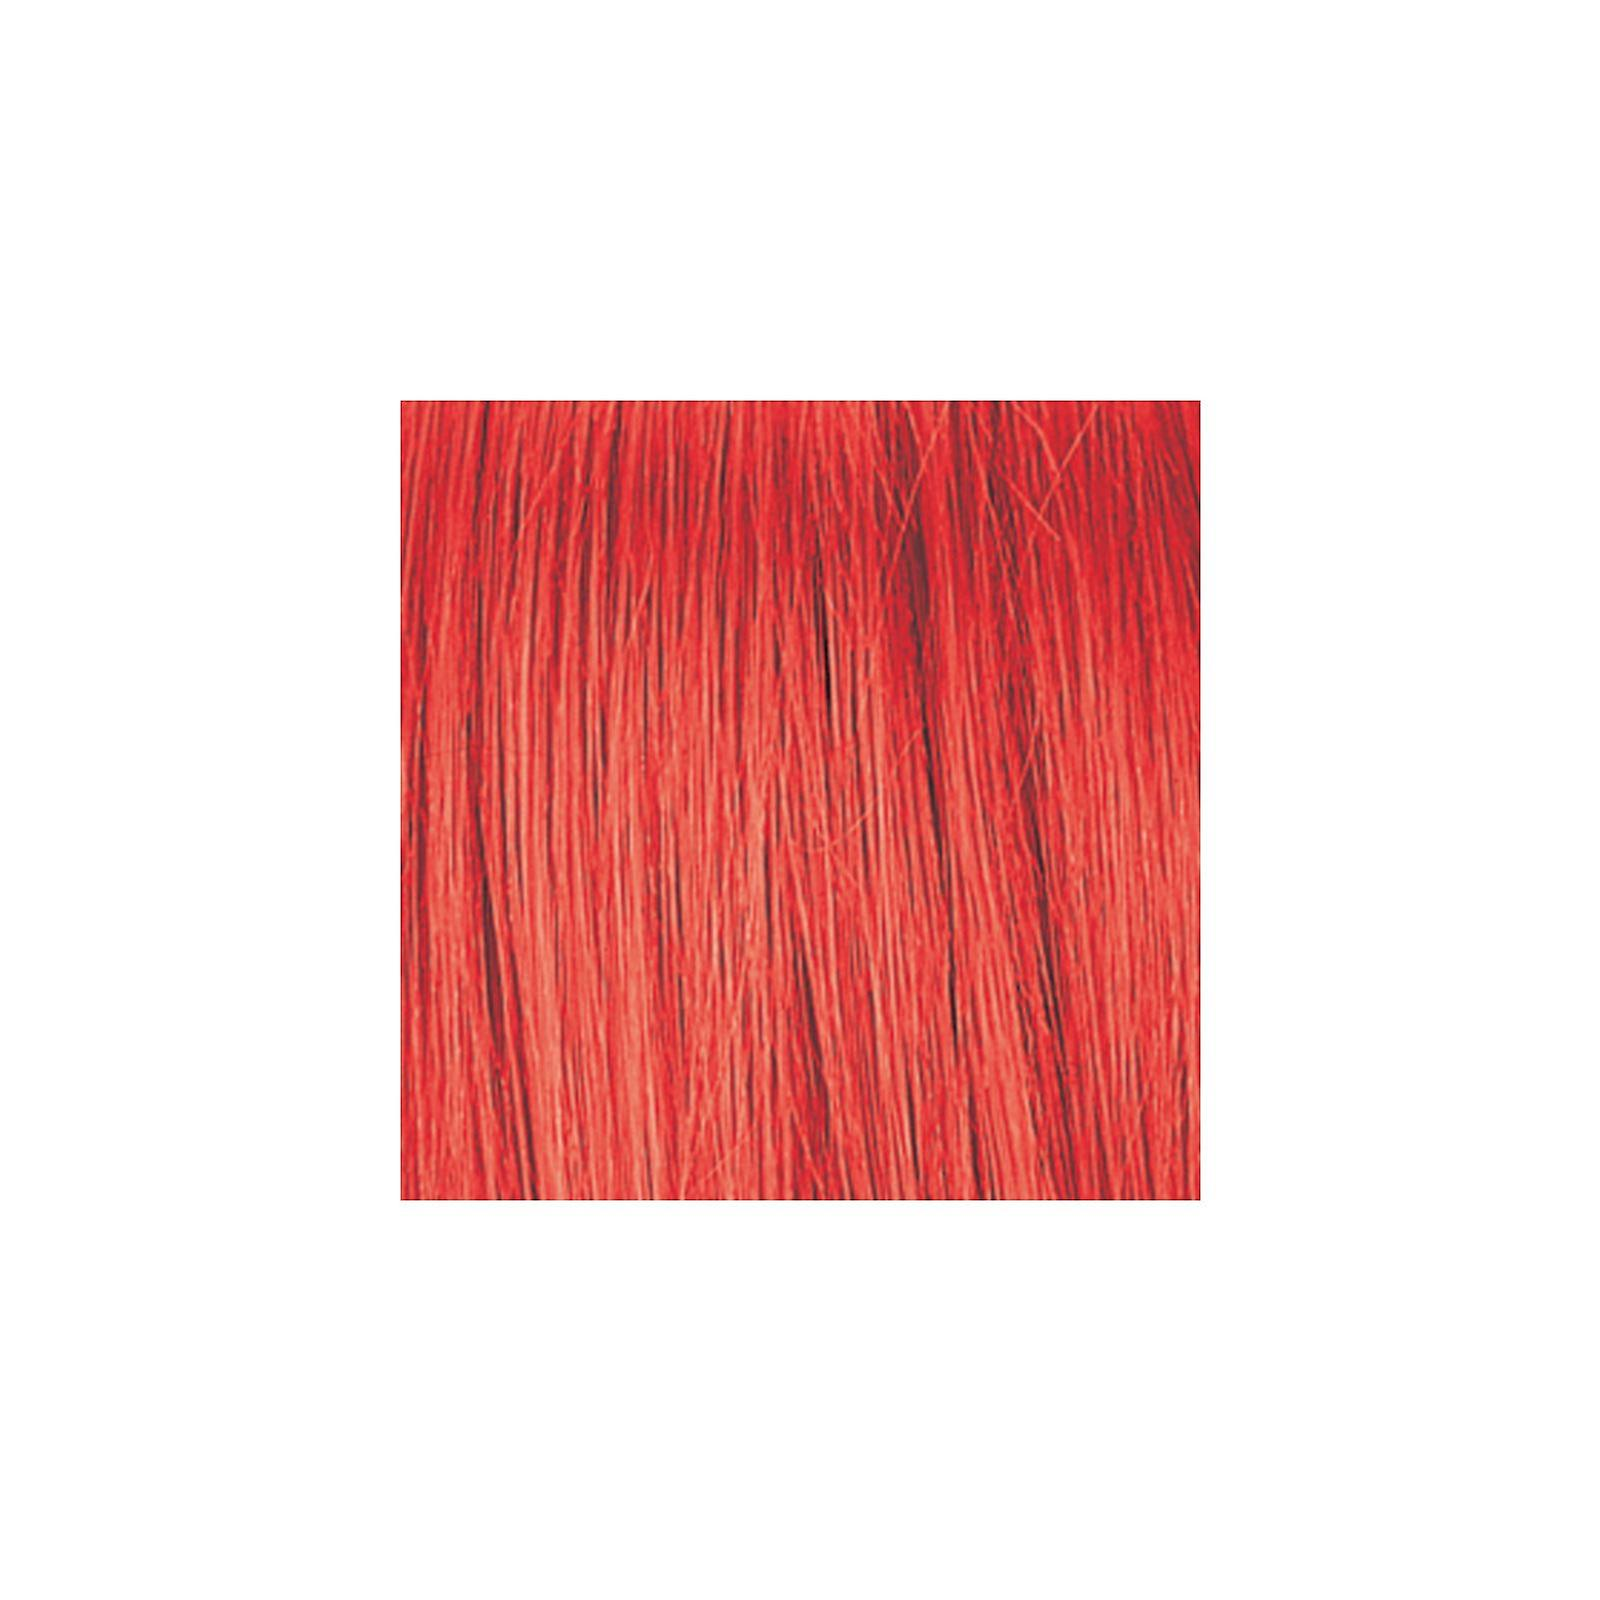 Stargazer Hair Dye -  Hot Red With Tint Brush